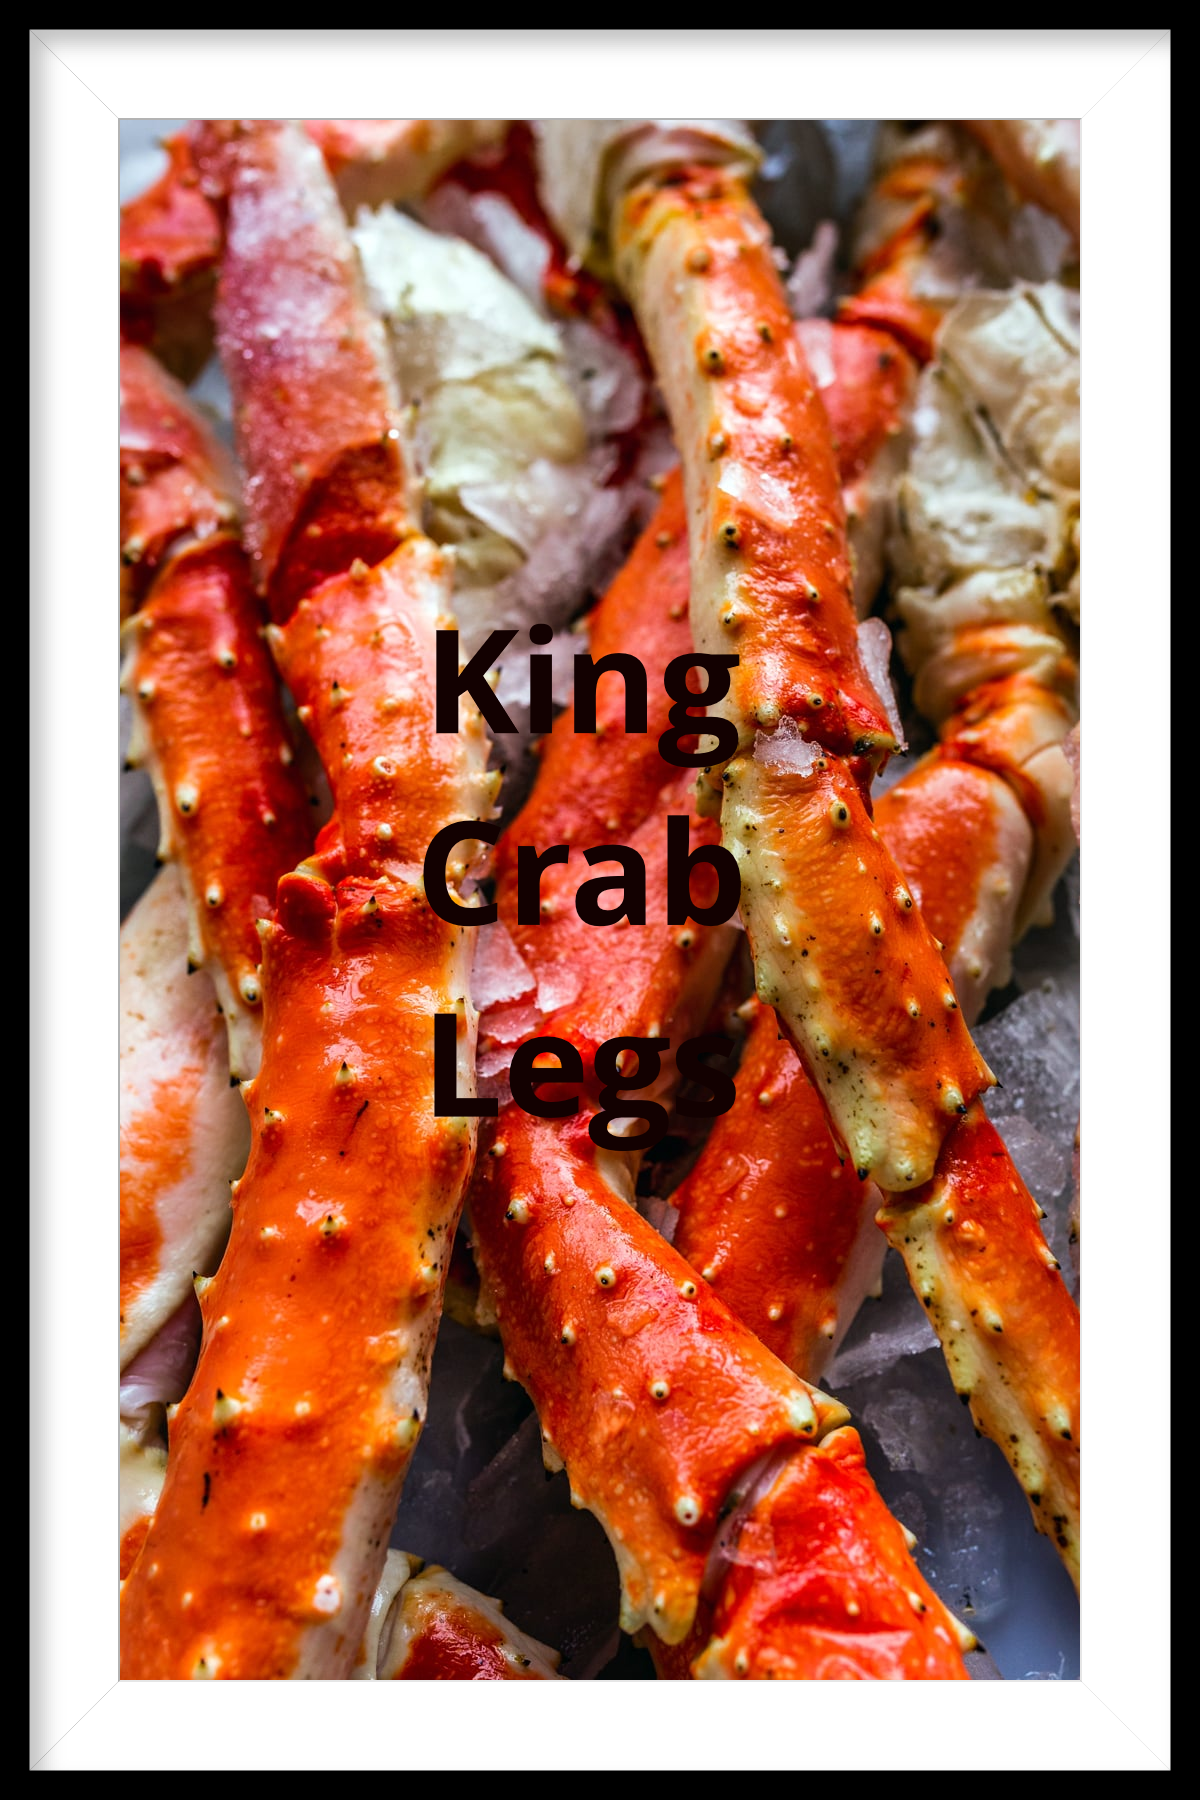 https://0201.nccdn.net/4_2/000/000/07d/95b/king-crab-legs.png